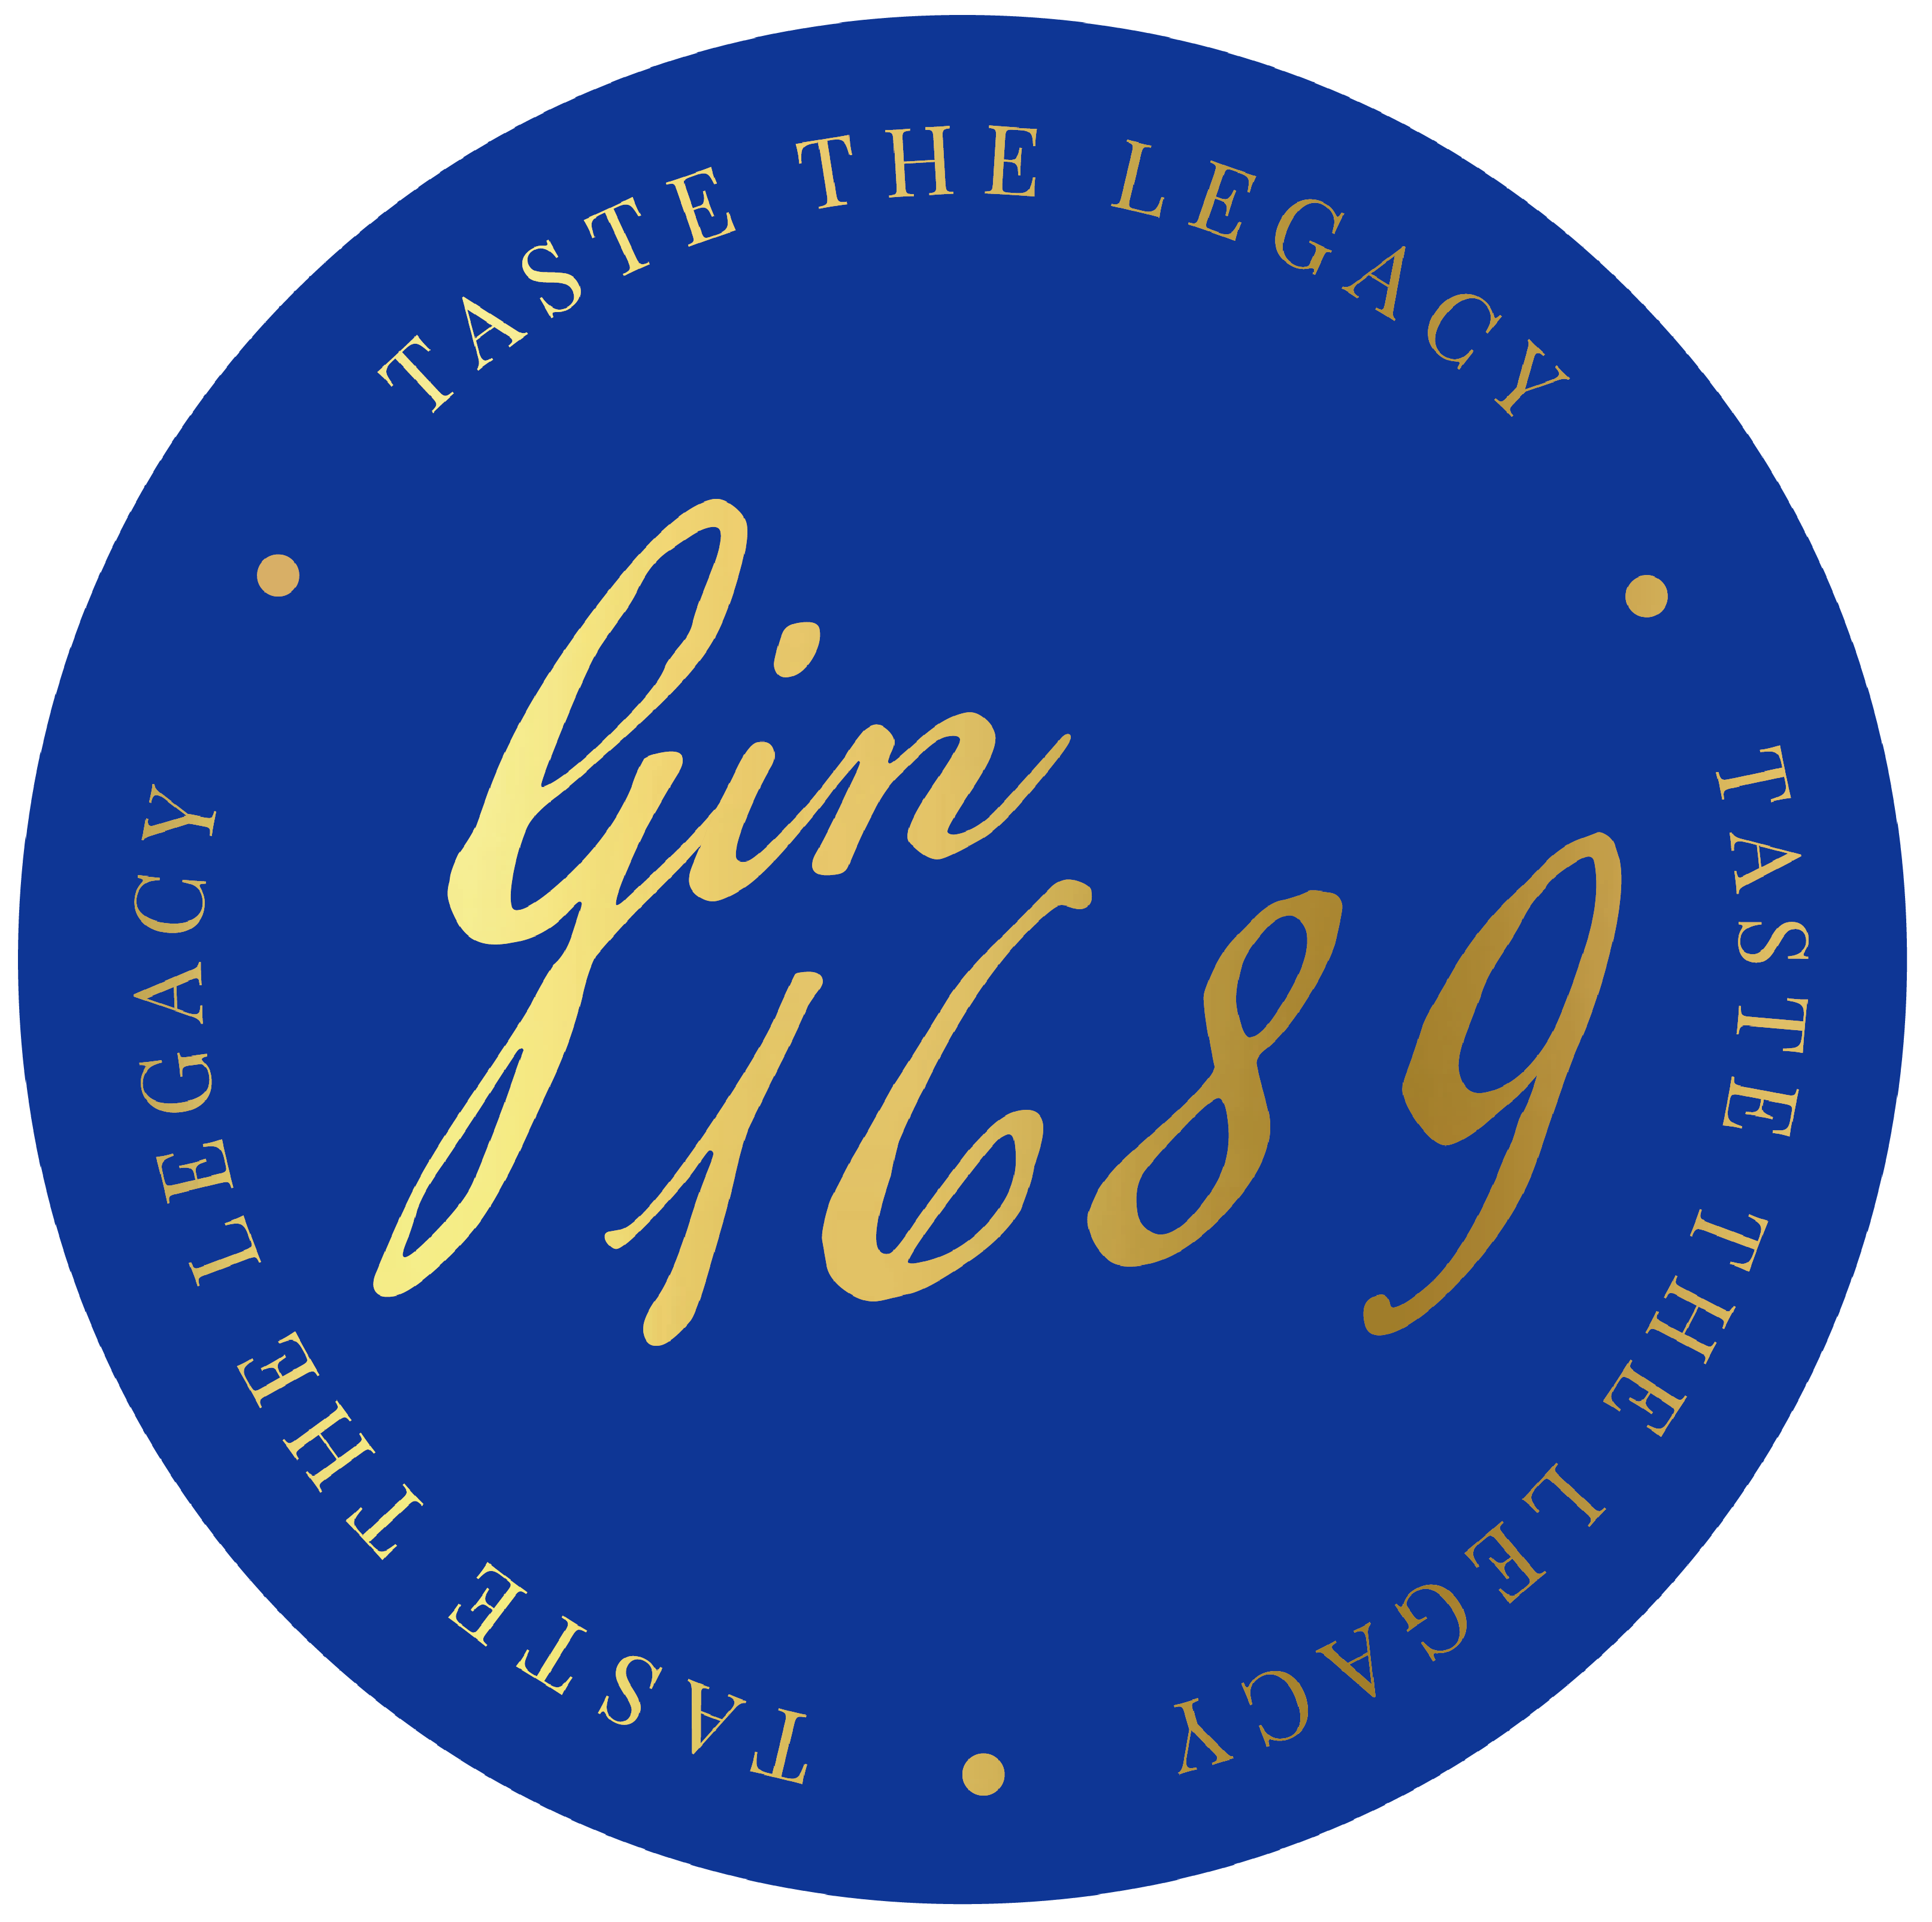 https://www.gin1689.com/nl/collections/frontpage/products/queen-mary-gin